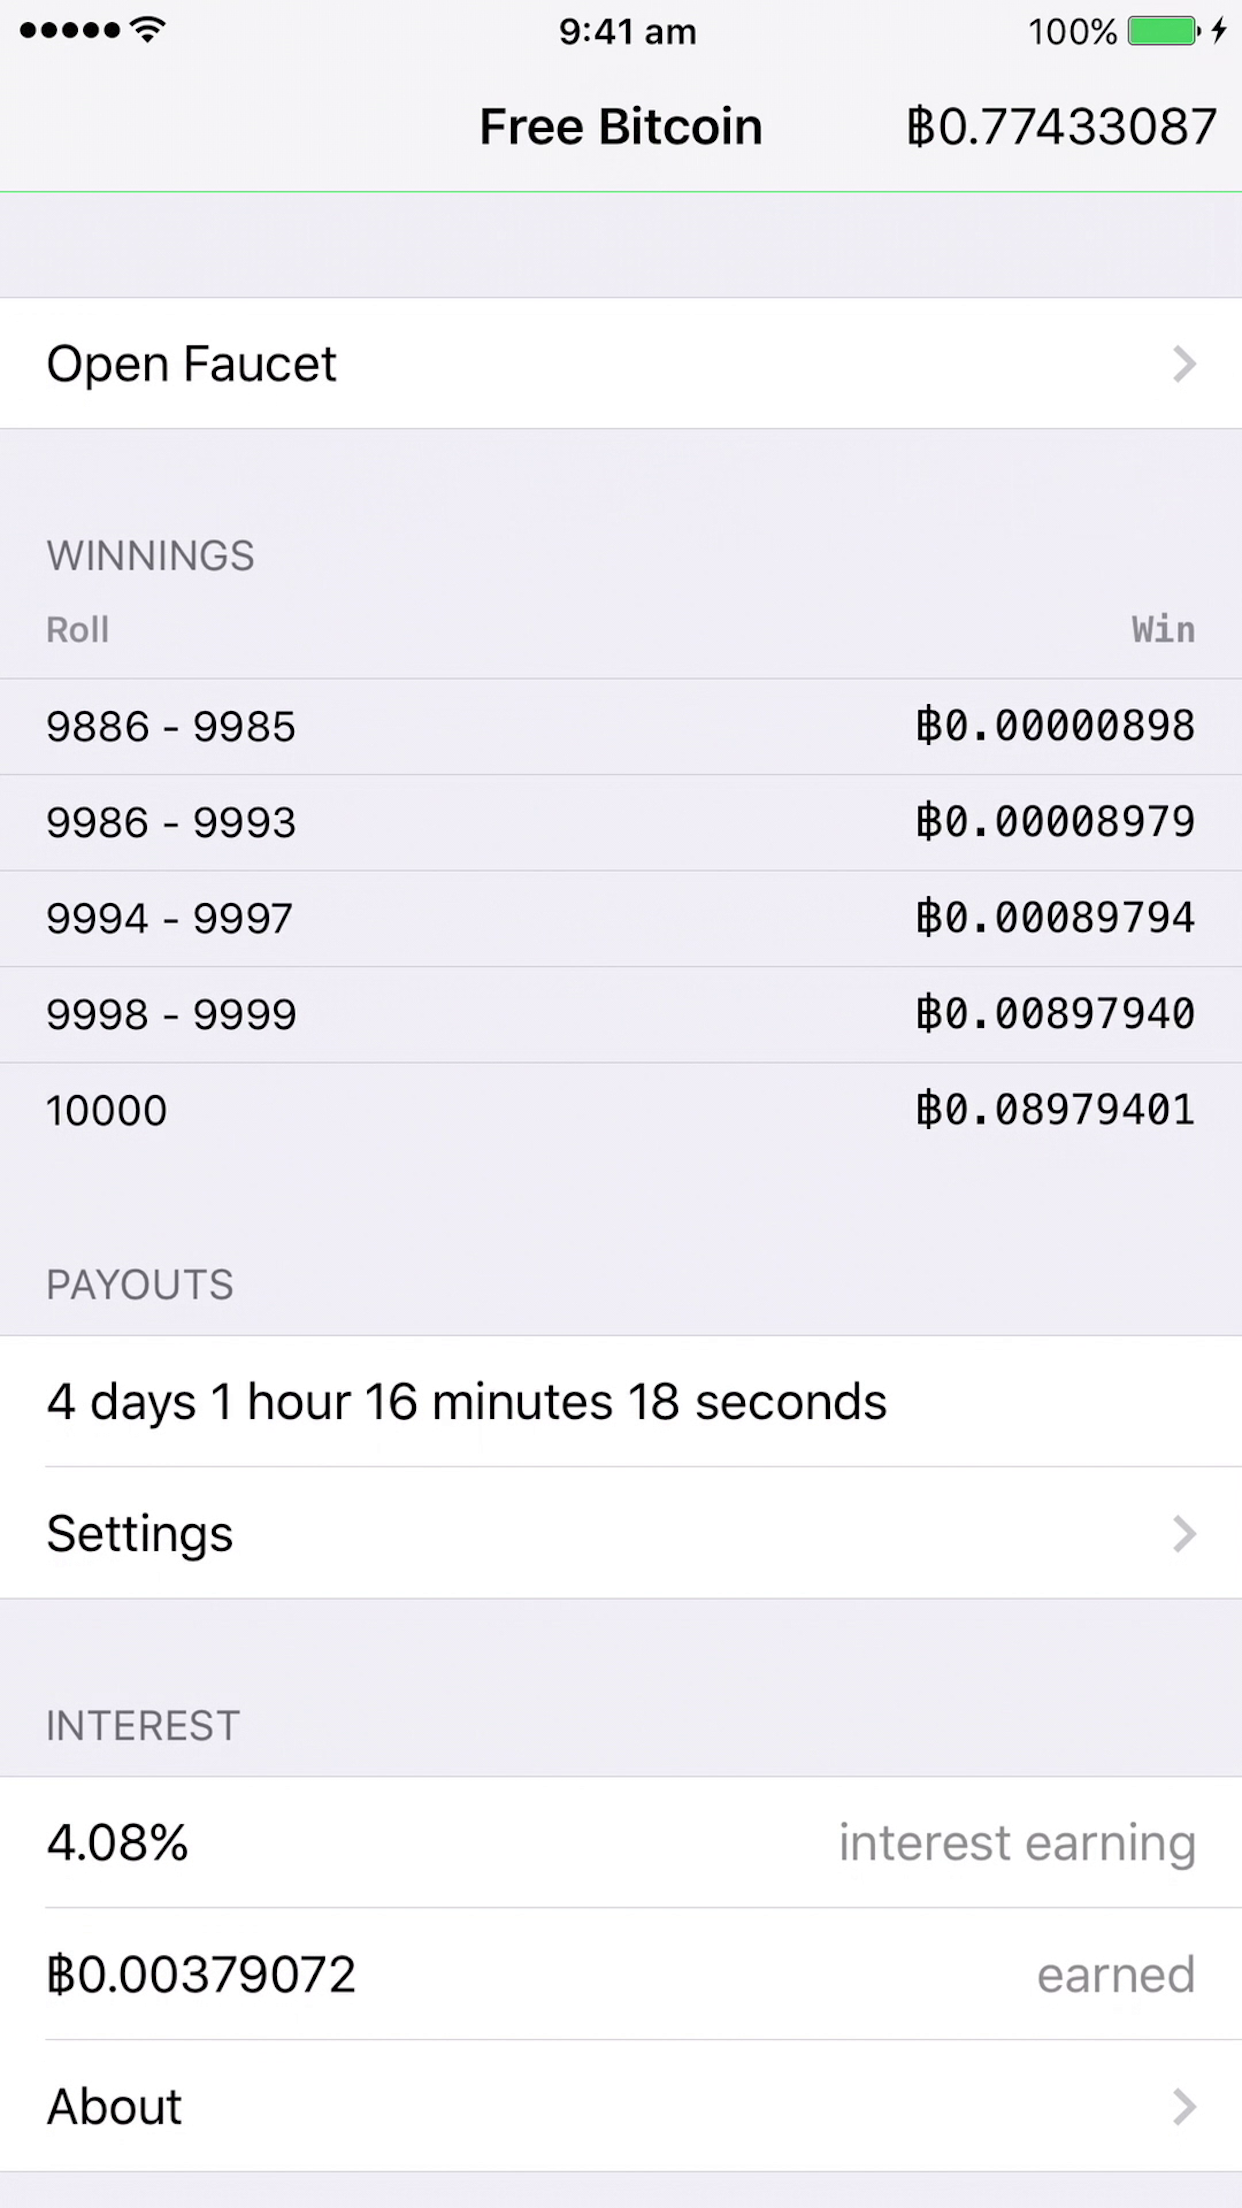 Lottery system, win over 1.5 BTC, 10 winners selected each week